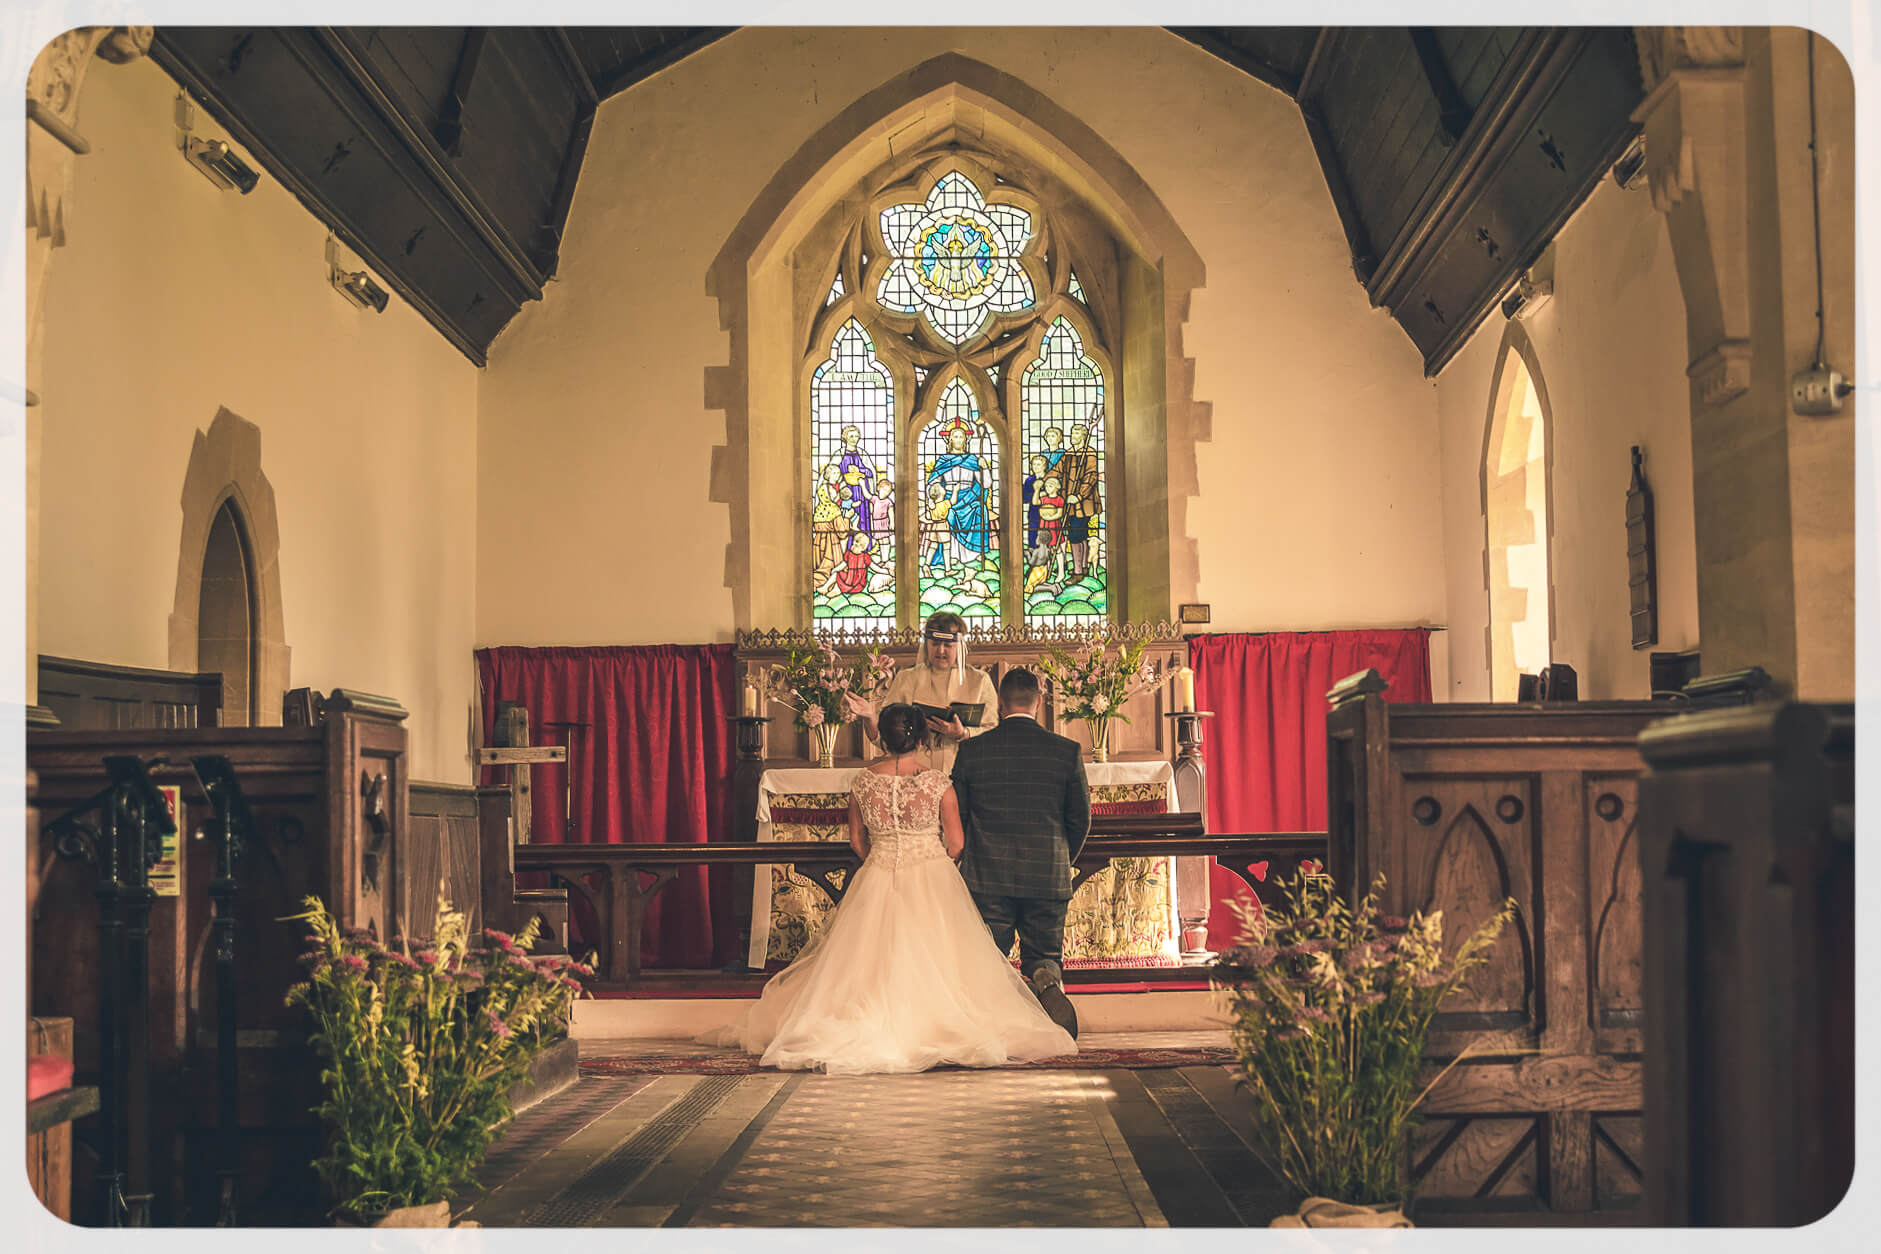 The Bride and Groom kneel at the alter in front of the female priest as she reads out part of the wedding service. The priest wears a full face shield as required by COVID regulations at the time.